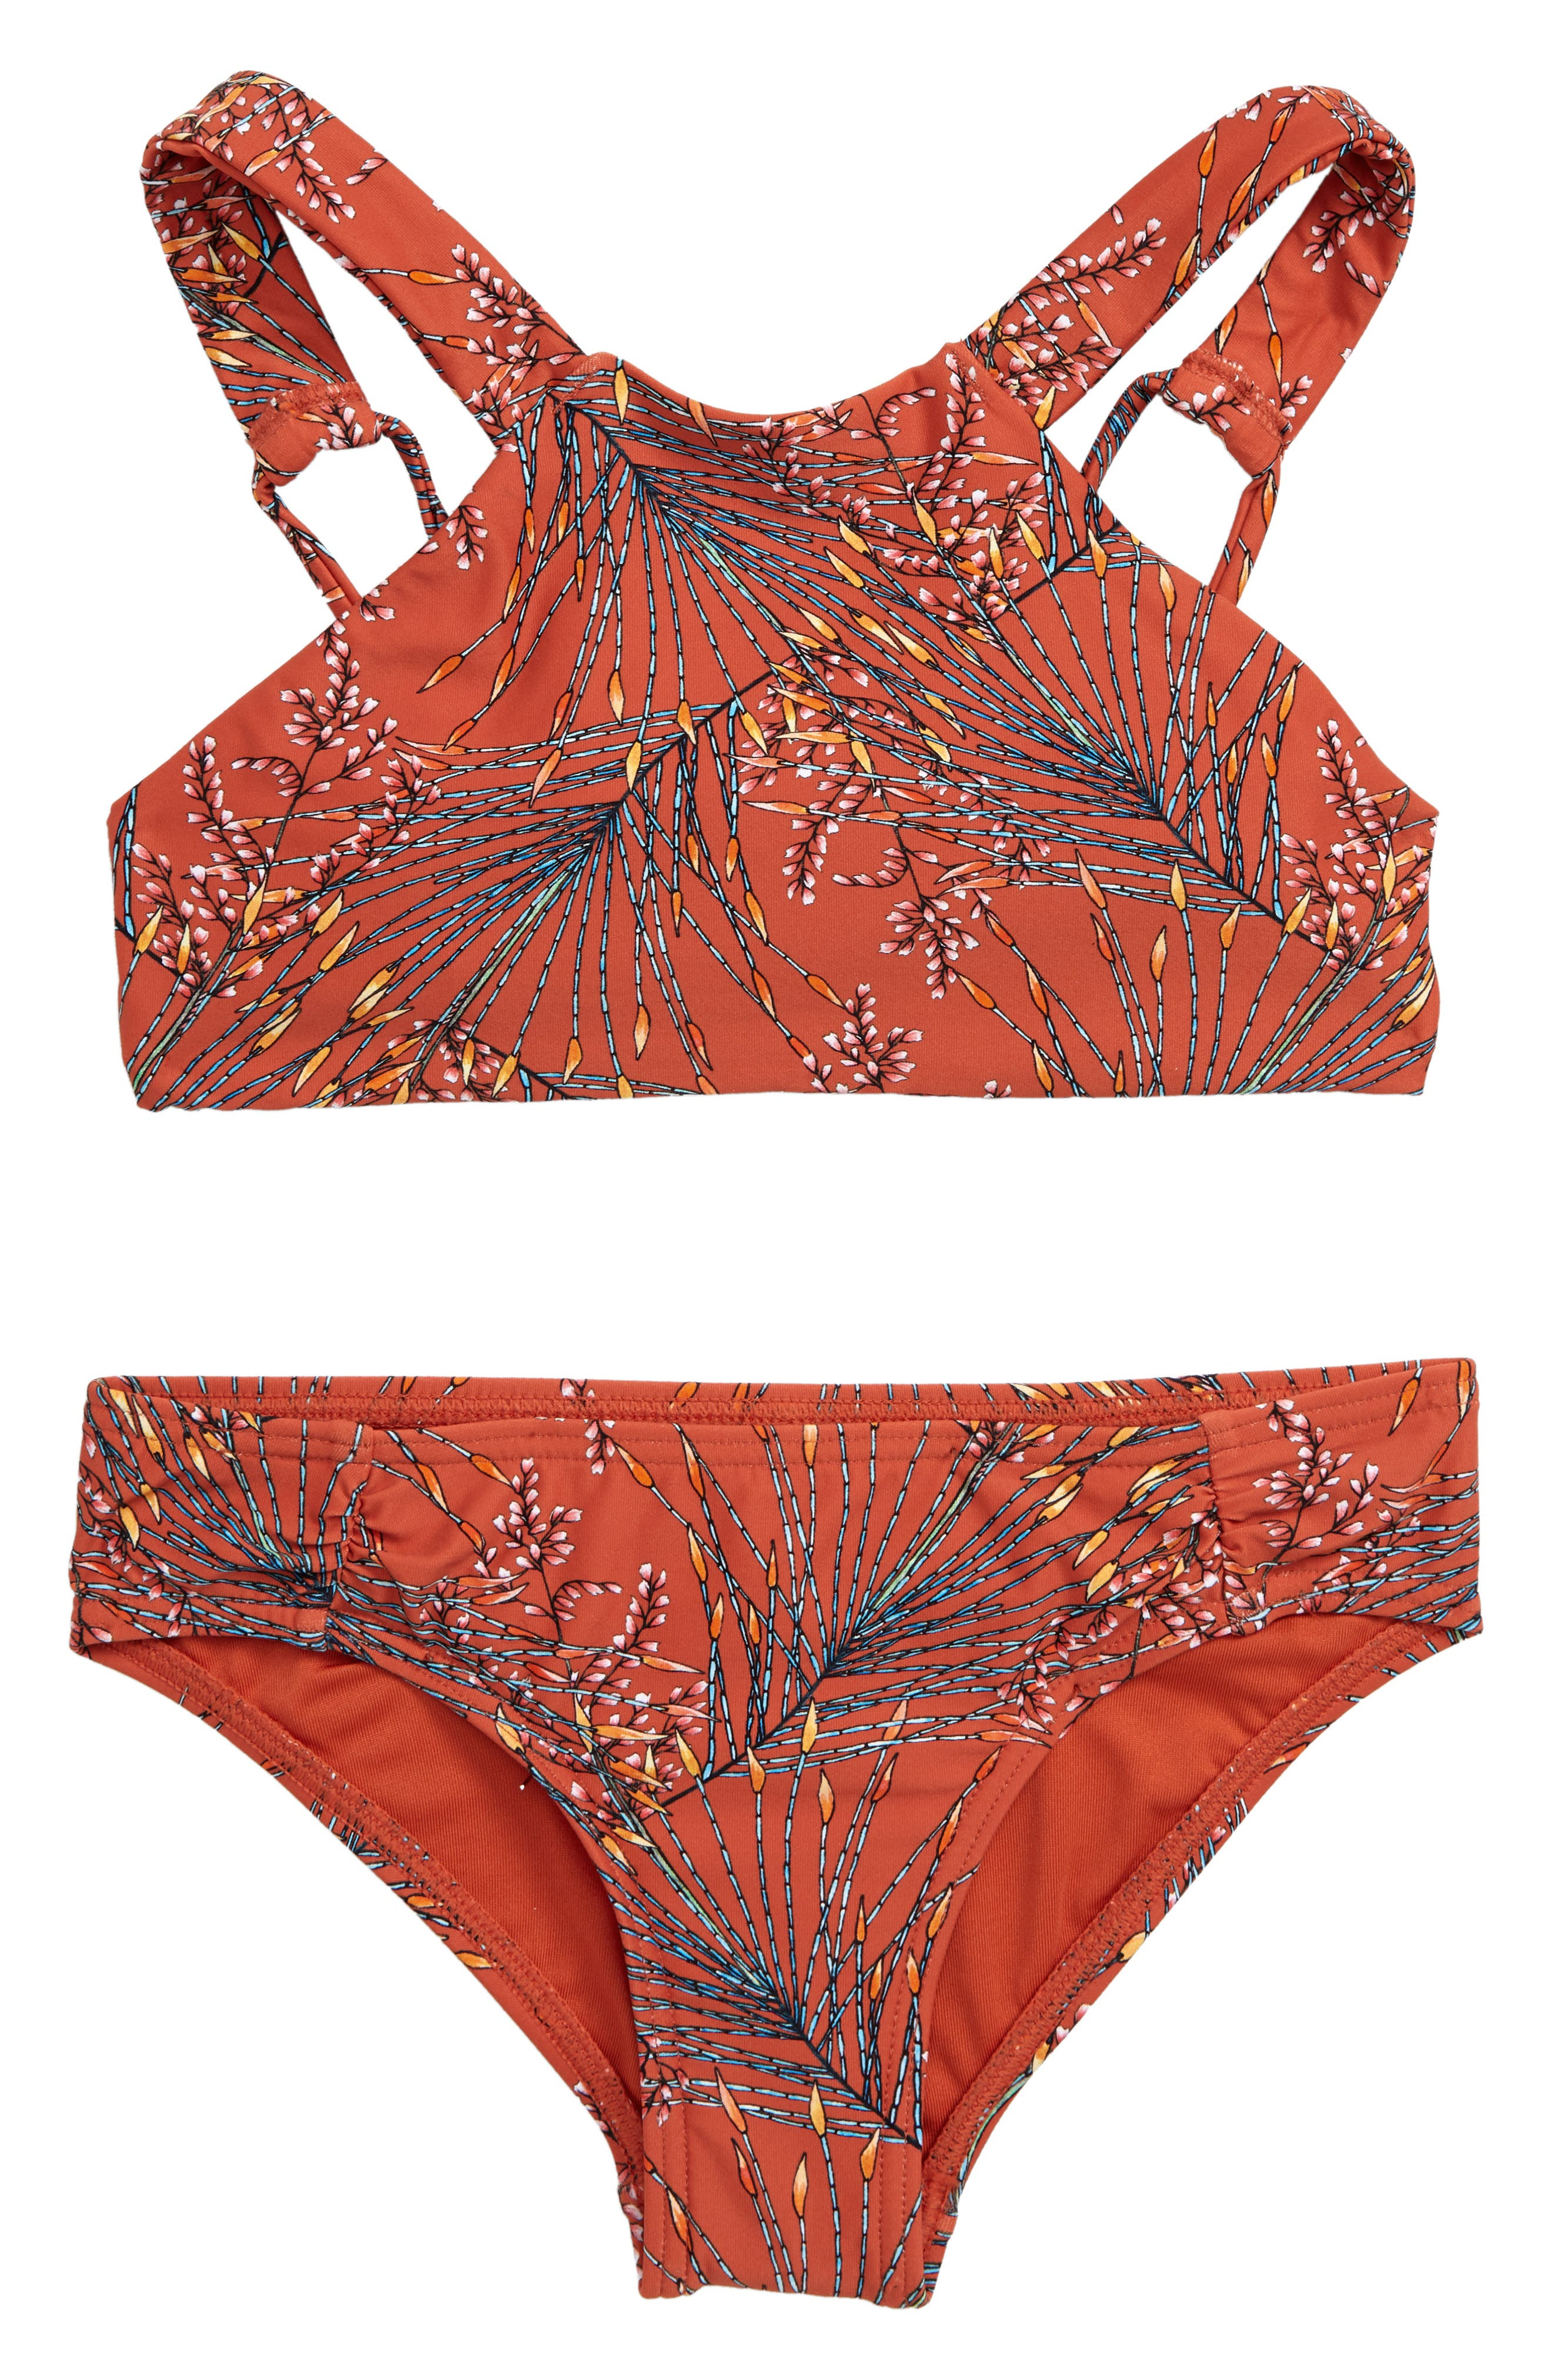 O'NEILL Prism Two-Piece Halter Swimsuit, Main, color, KOI